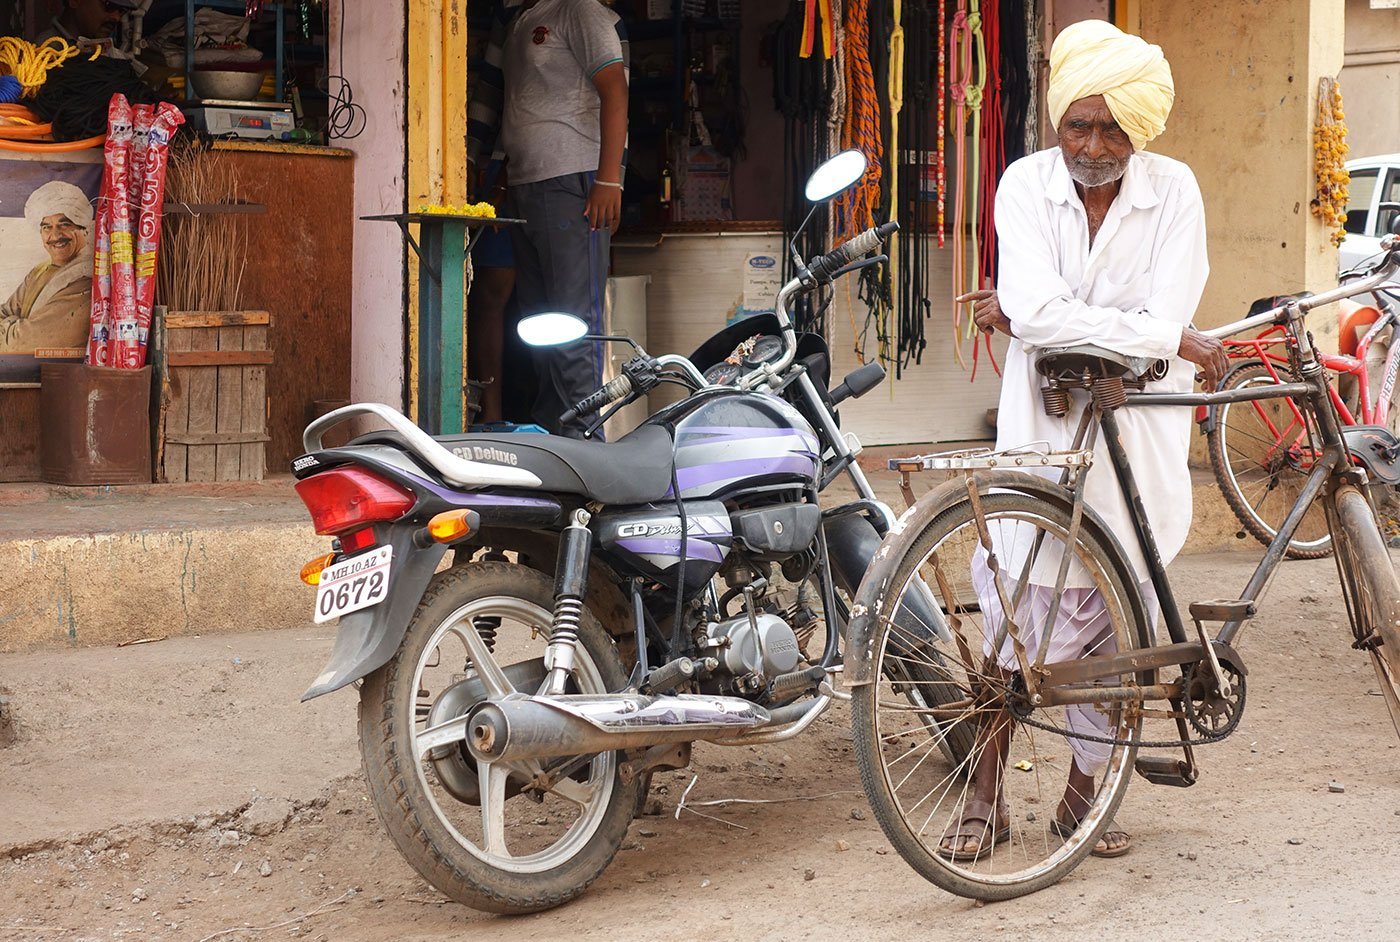 Ganpati Bala Yadav with his cycle outside a shop